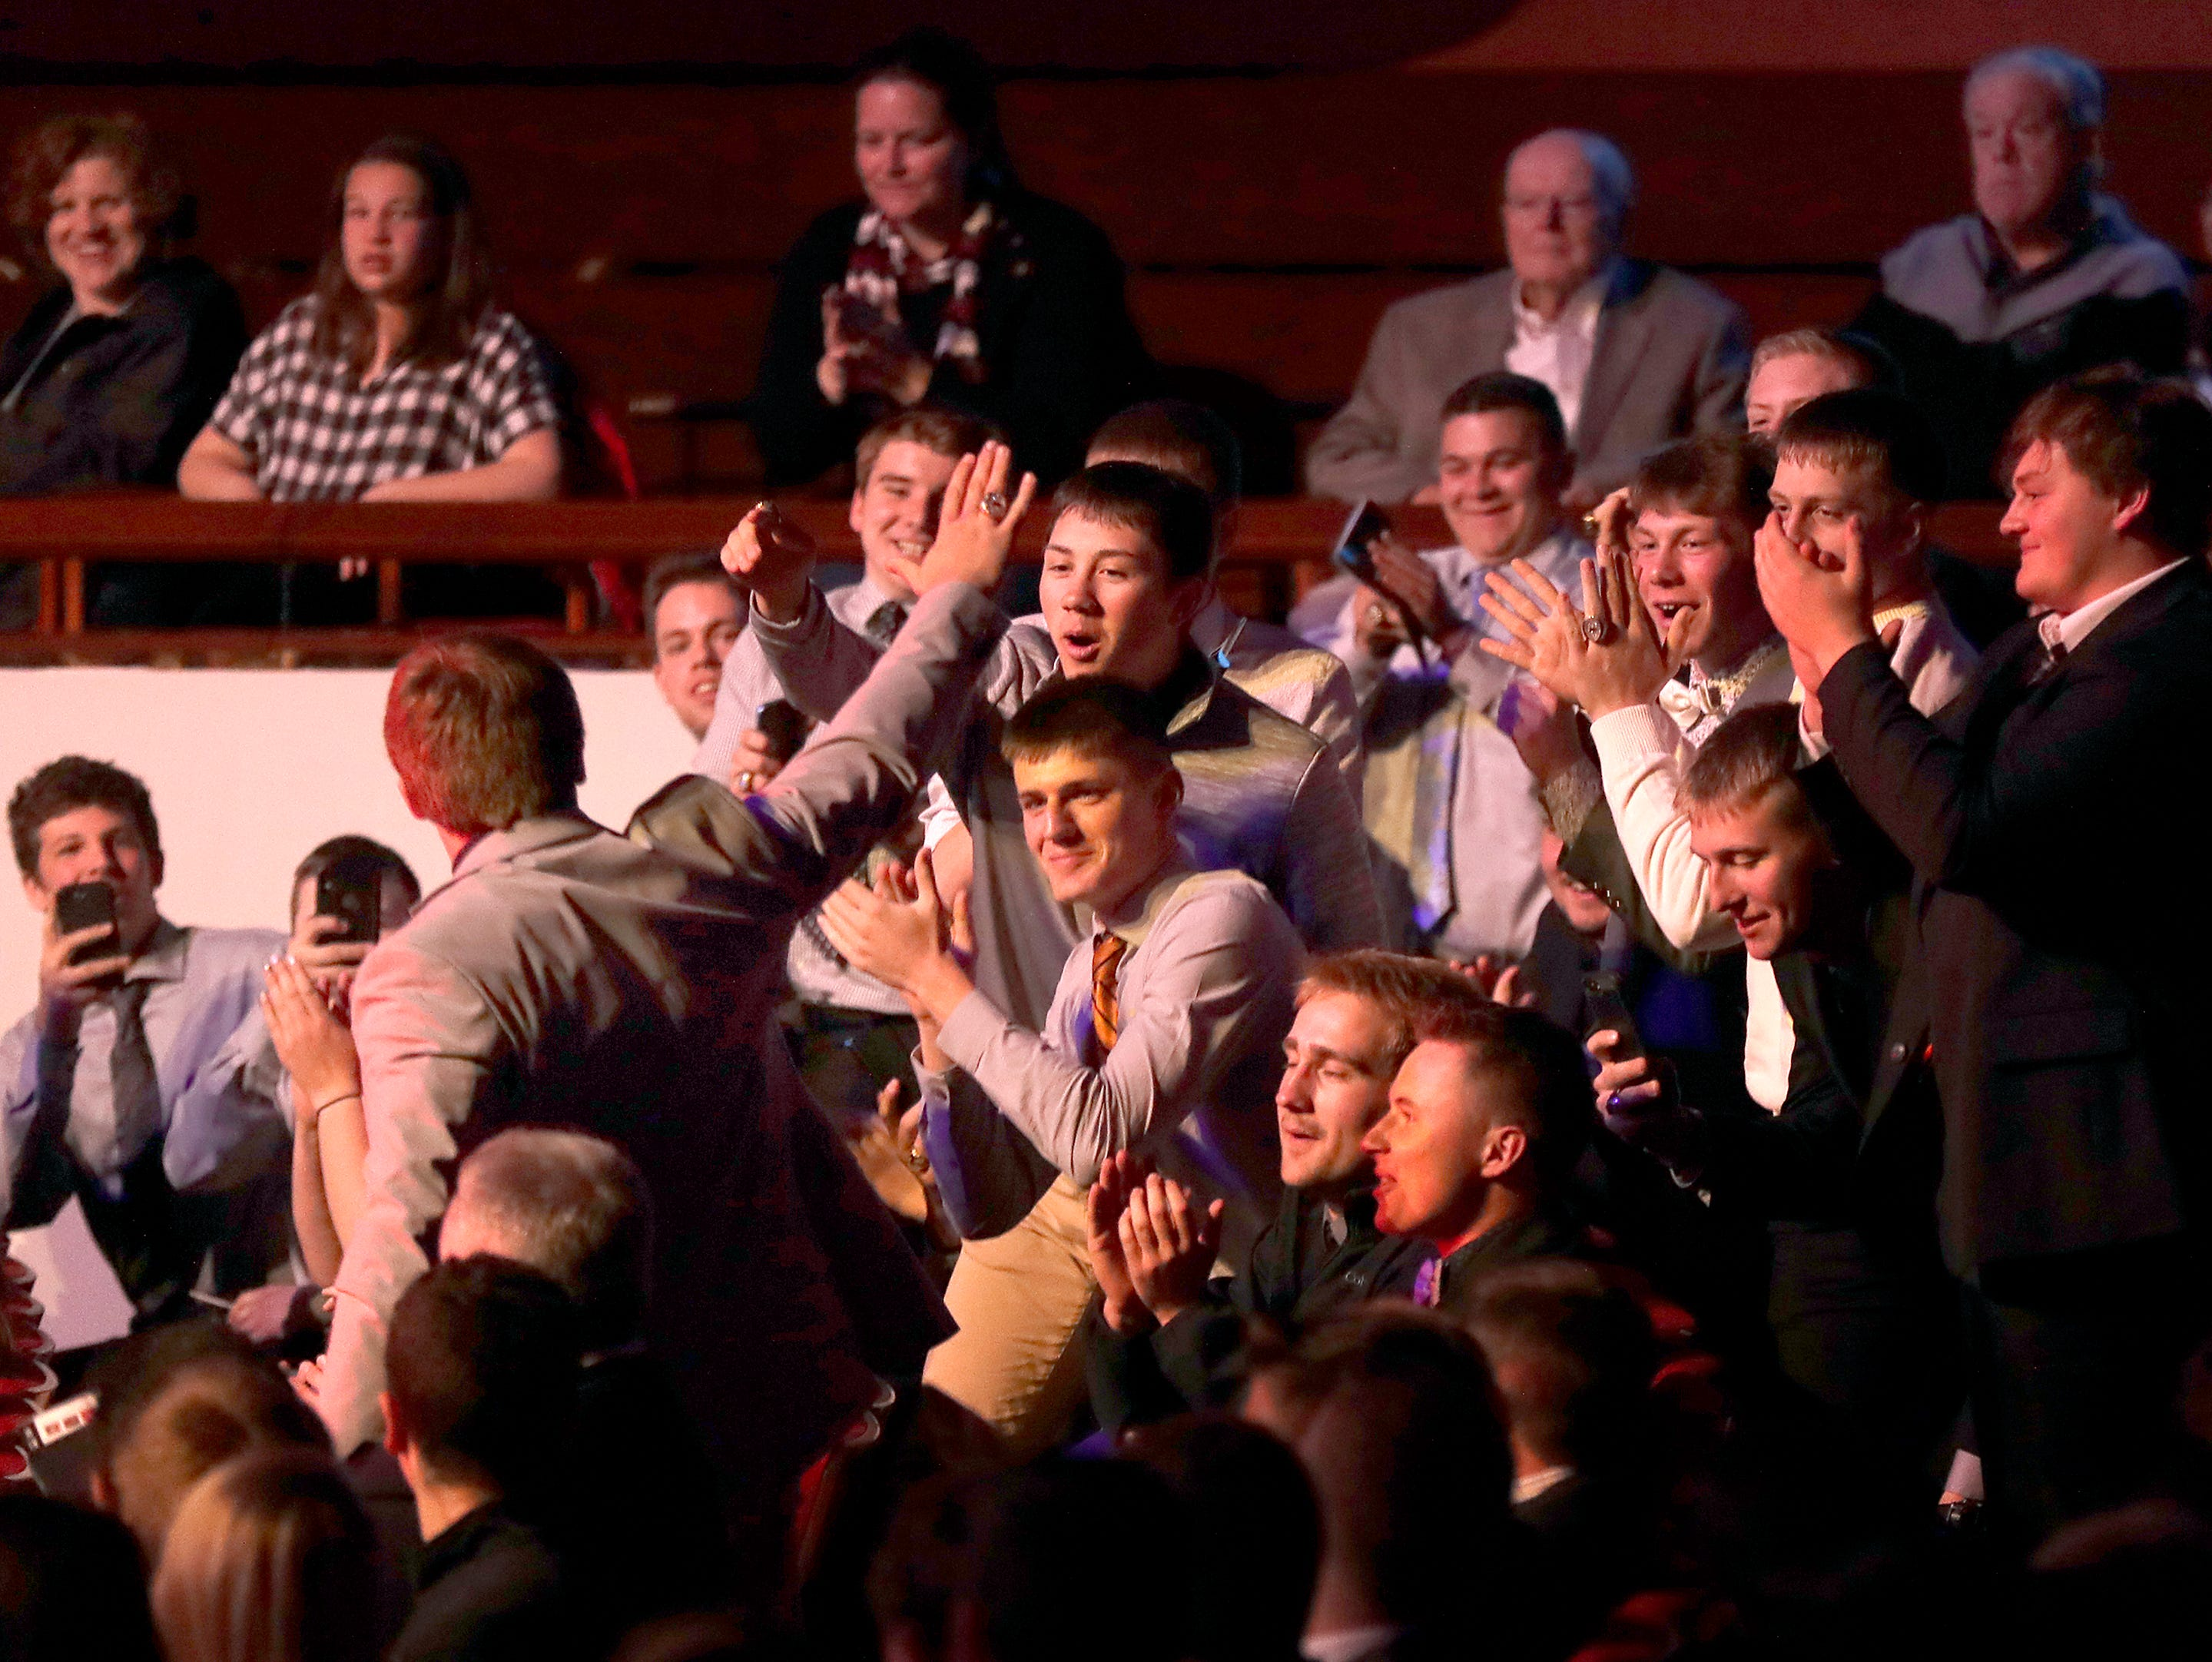 Football Player of the Year, Iola-Scandinavia's Bryce Huettner his team mates react to the award announcement during the Wisconsin High School Sports Awards show at the Fox Cities Performing Arts Center on Wednesday, May 8, 2019, in Appleton, Wis. Olympic champion Michael Phelps was the guest speaker. The annual event was presented by USA TODAY NETWORK-Wisconsin.  Wm. Glasheen/USA TODAY NETWORK-Wisconsin.